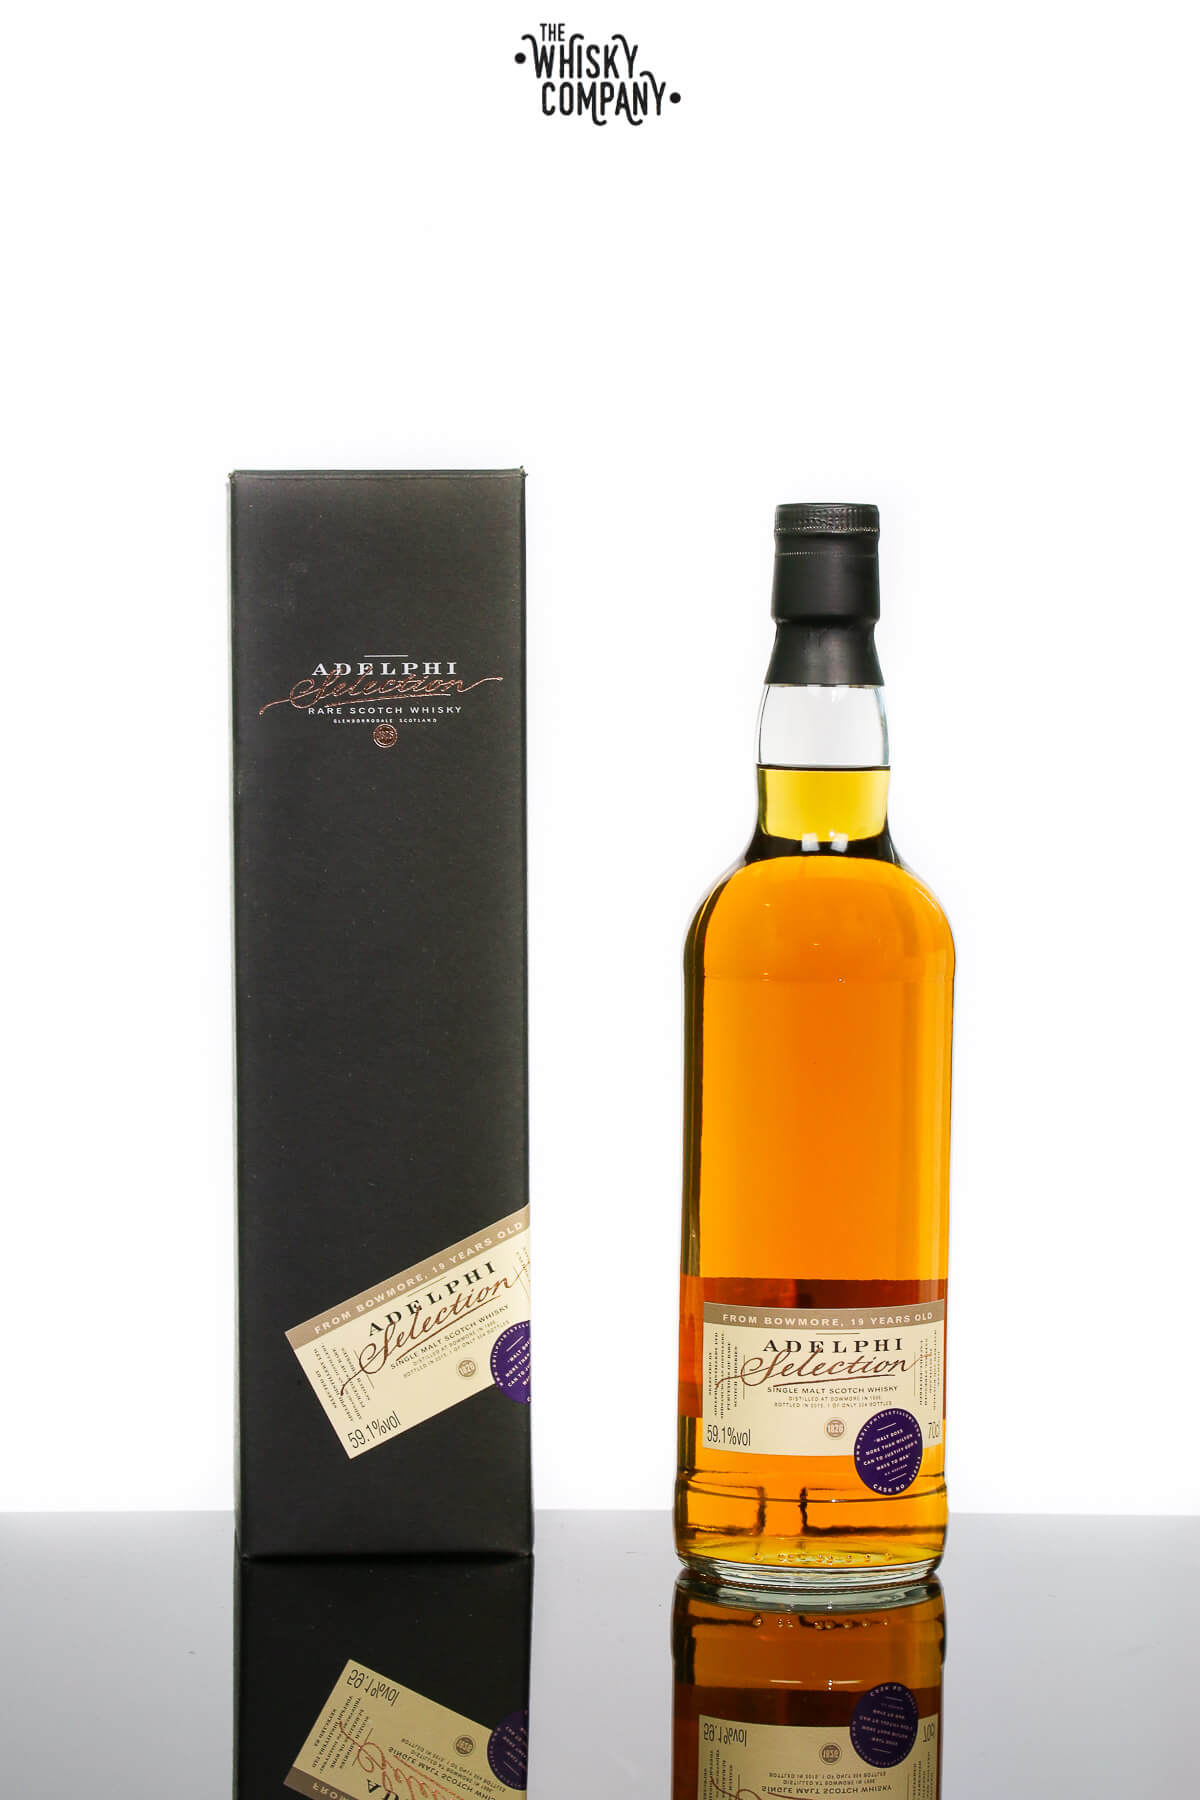 Adelphi 1996 Bowmore 19 Years Old Single Malt Scotch Whisky